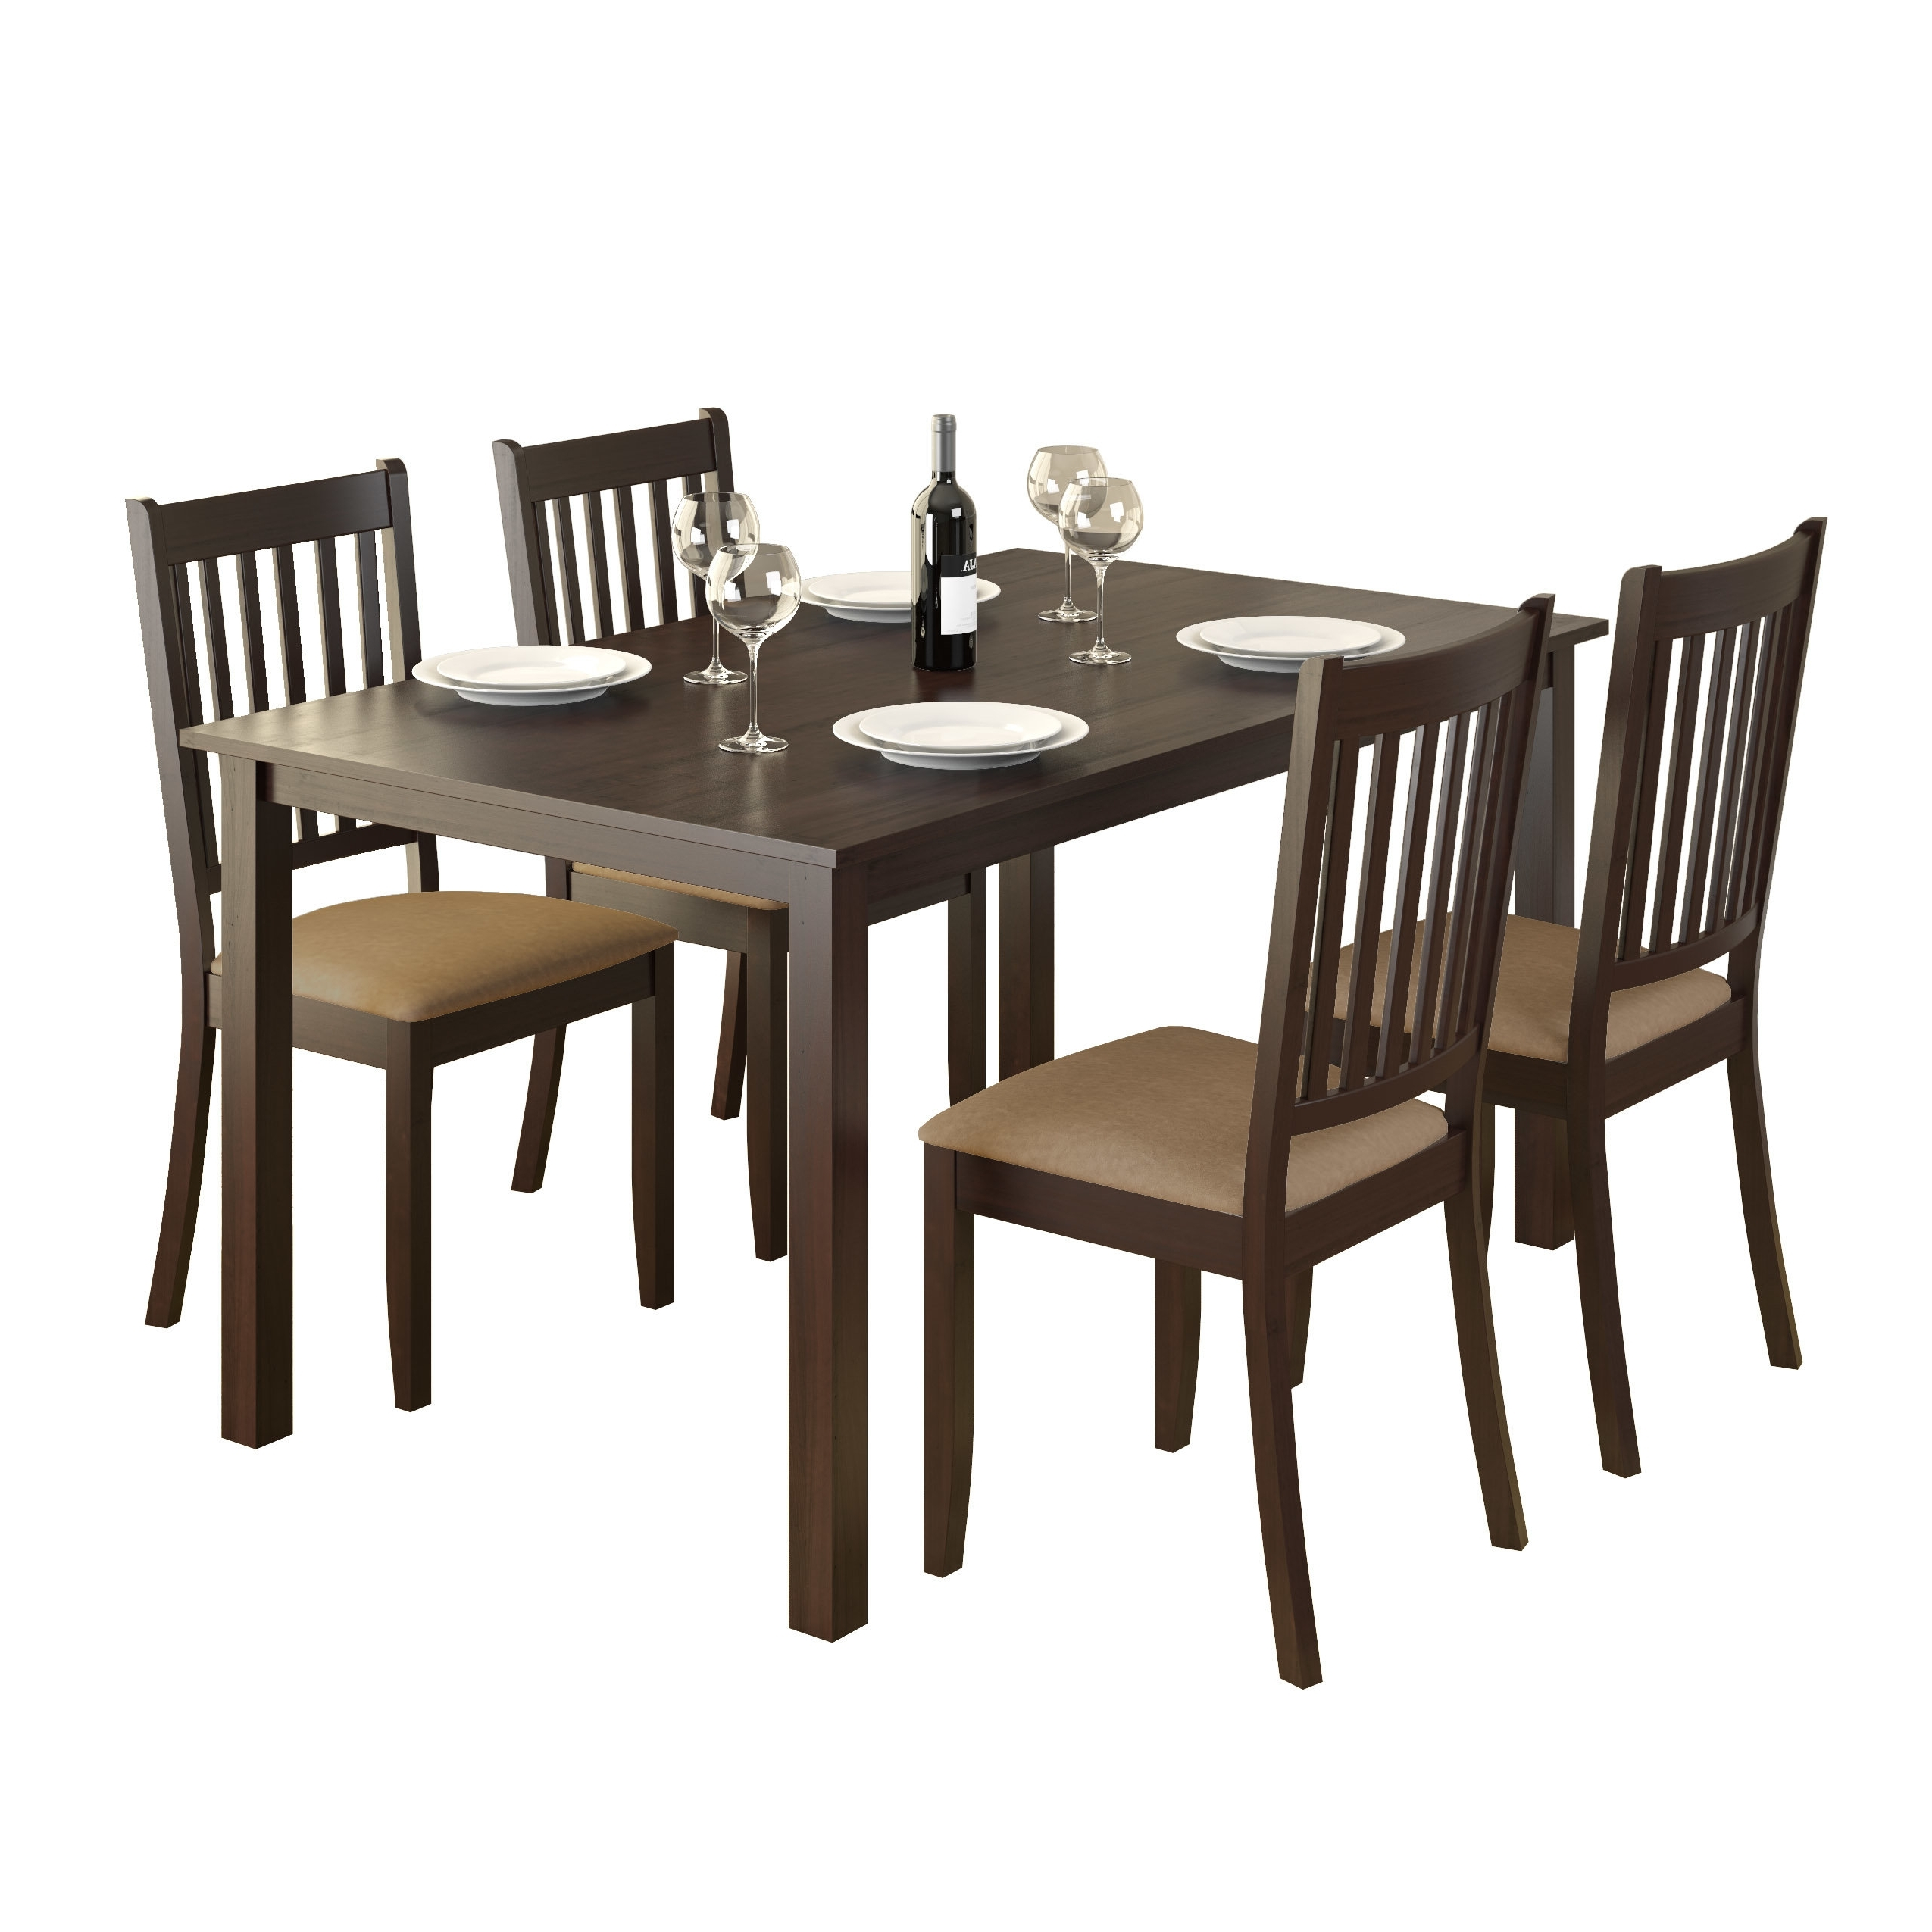 Dcor Design Atwood 5 Piece Dining Set & Reviews (Gallery 16 of 25)